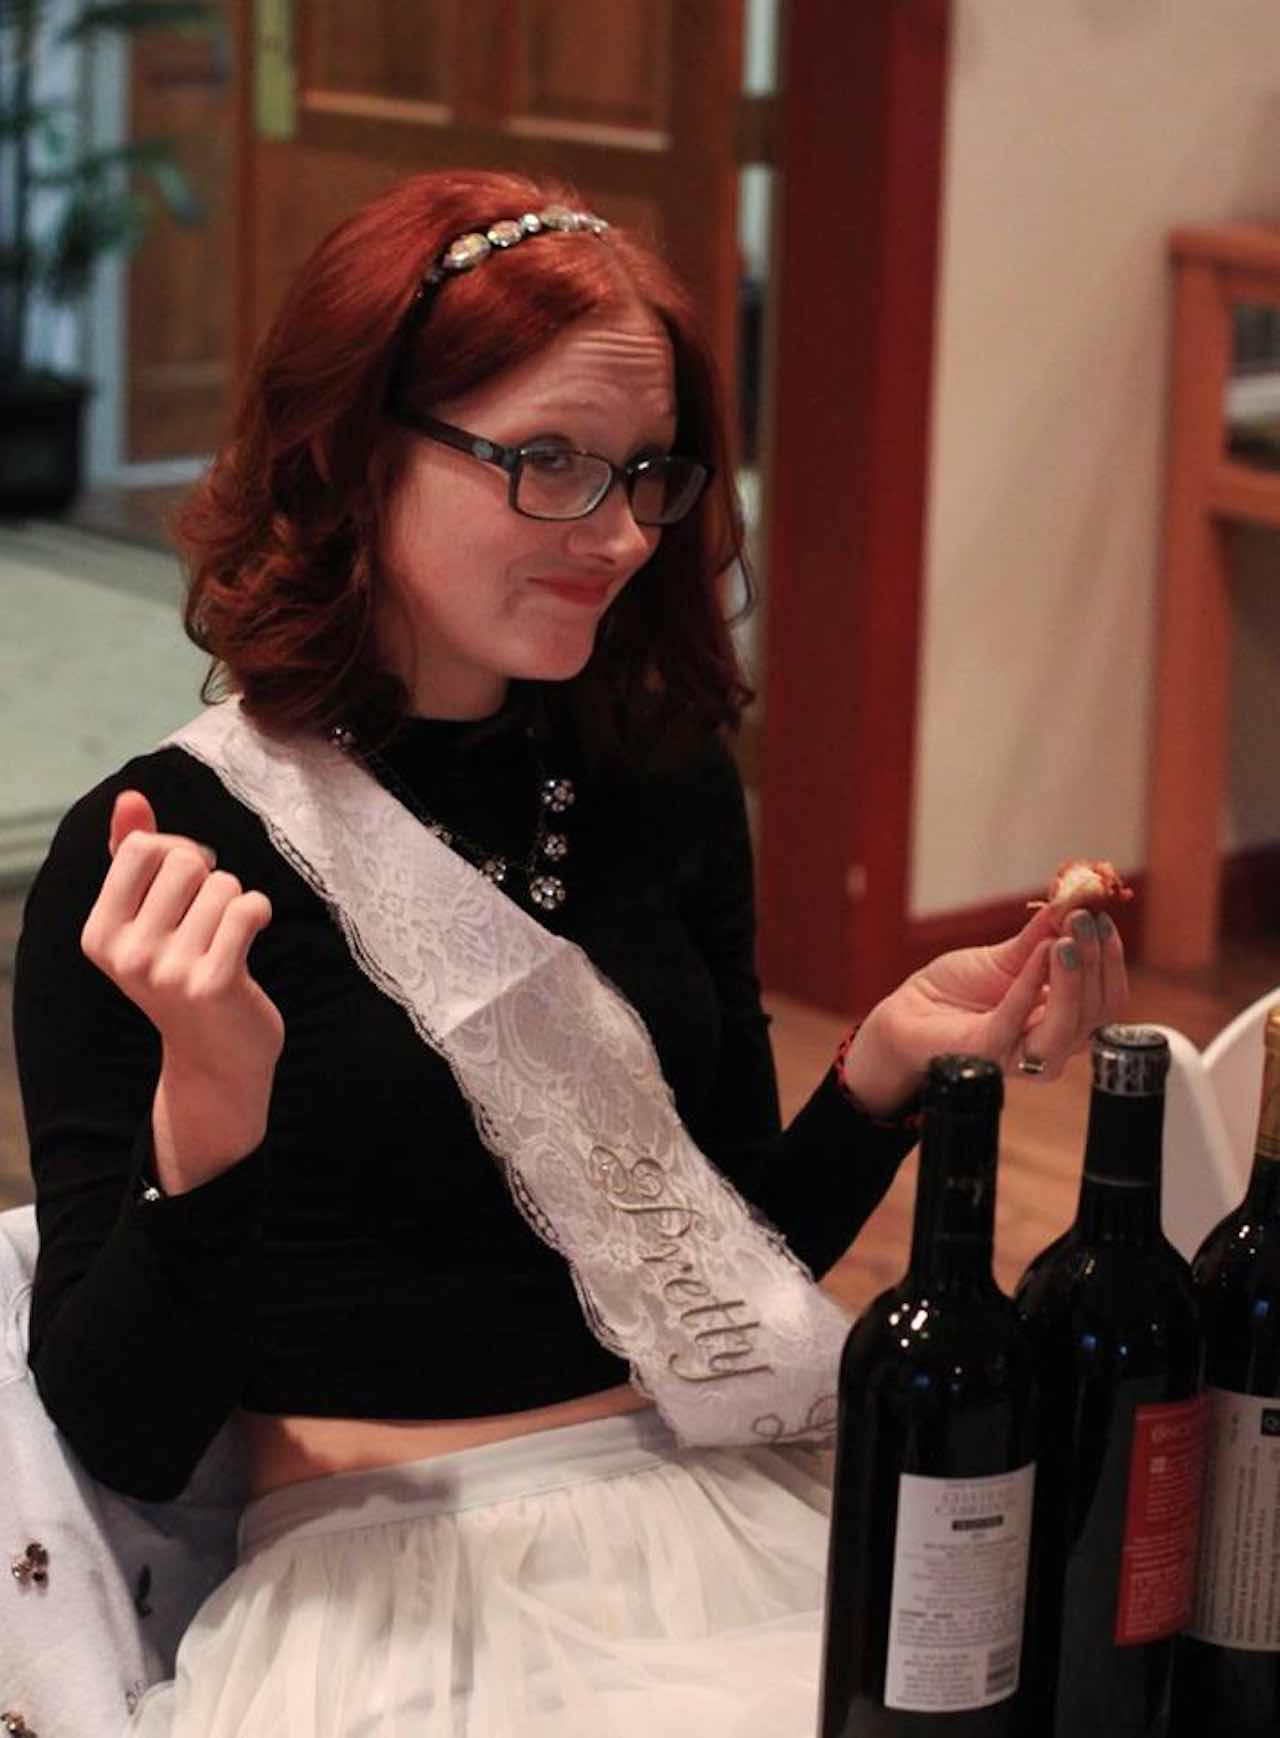 woman opening wine bottles